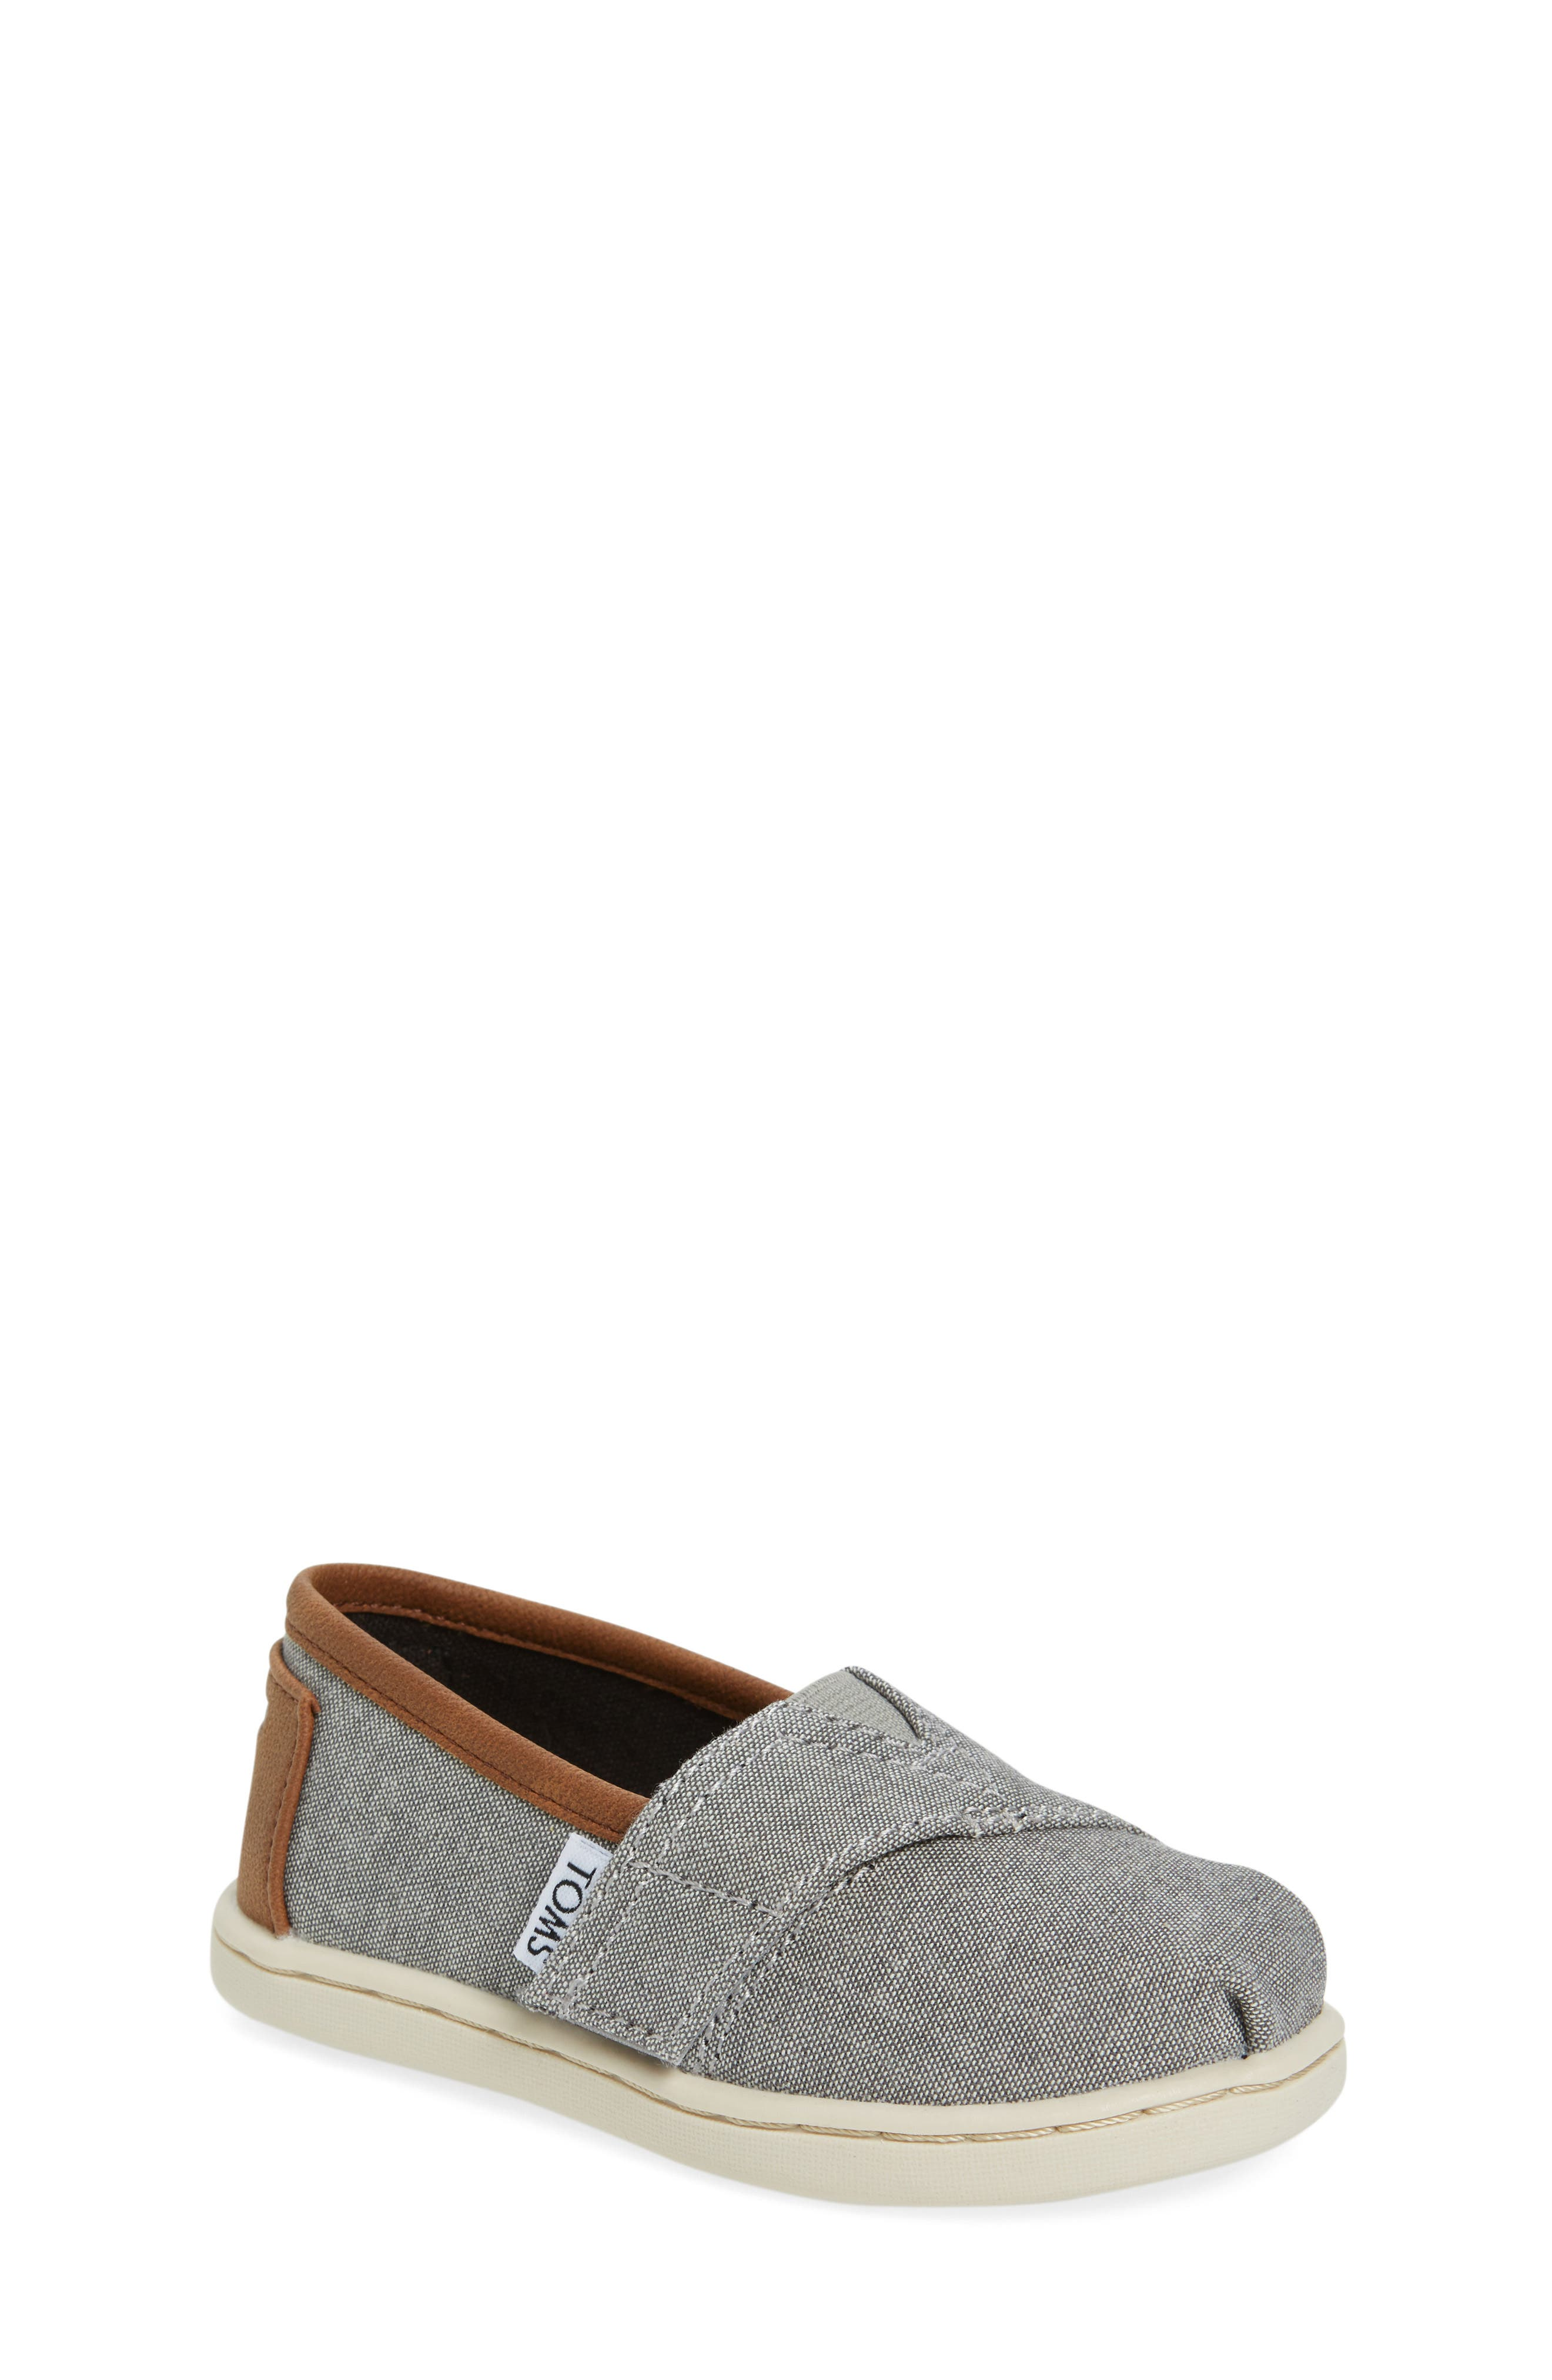 TOMS Chambray Slip-On